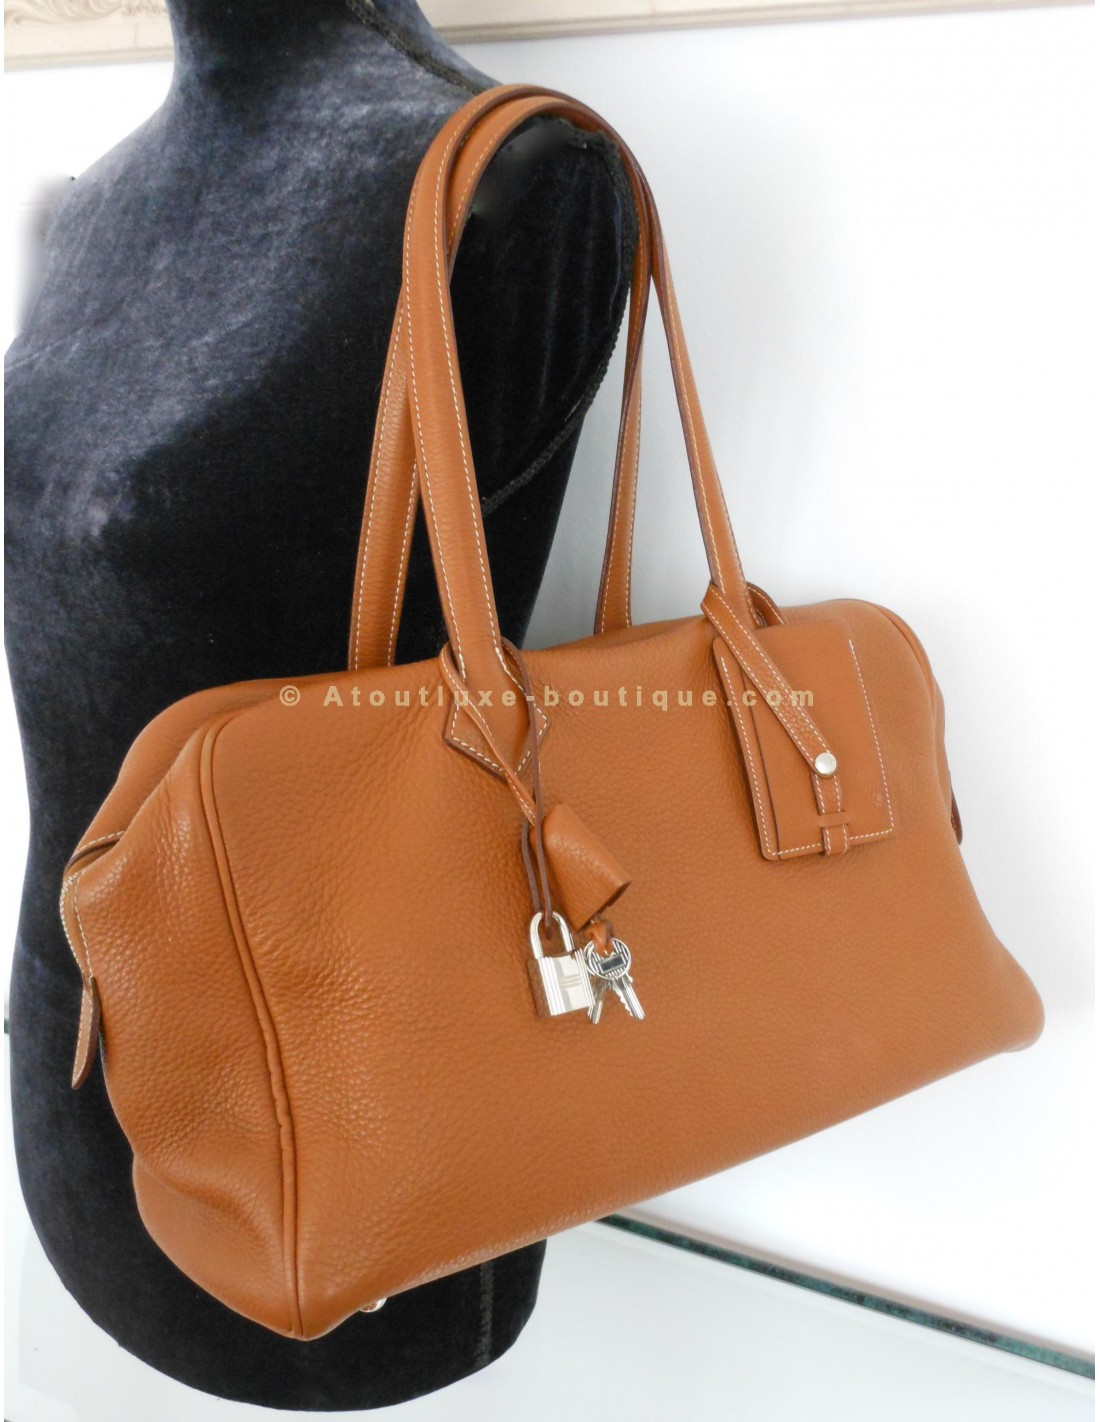 SAC HERMES VICTORIA 2 GOLD - Atoutluxe Boutique 0e322bed070